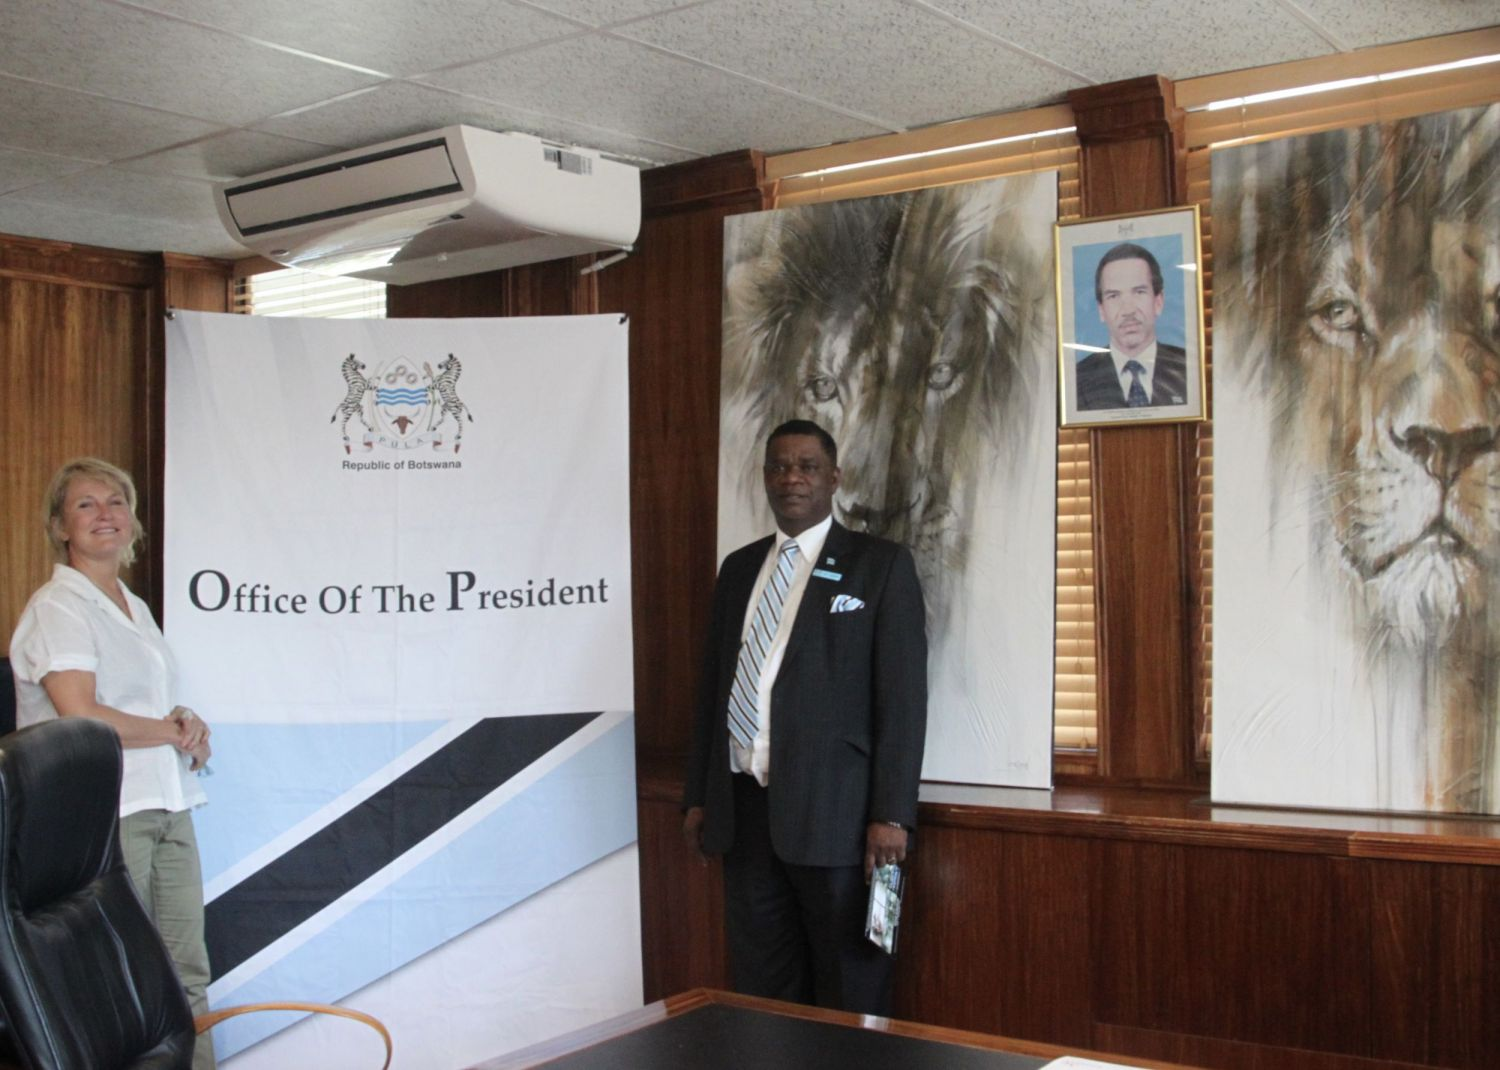 Meeting with Botswana's top officials was pretty nerve-racking.